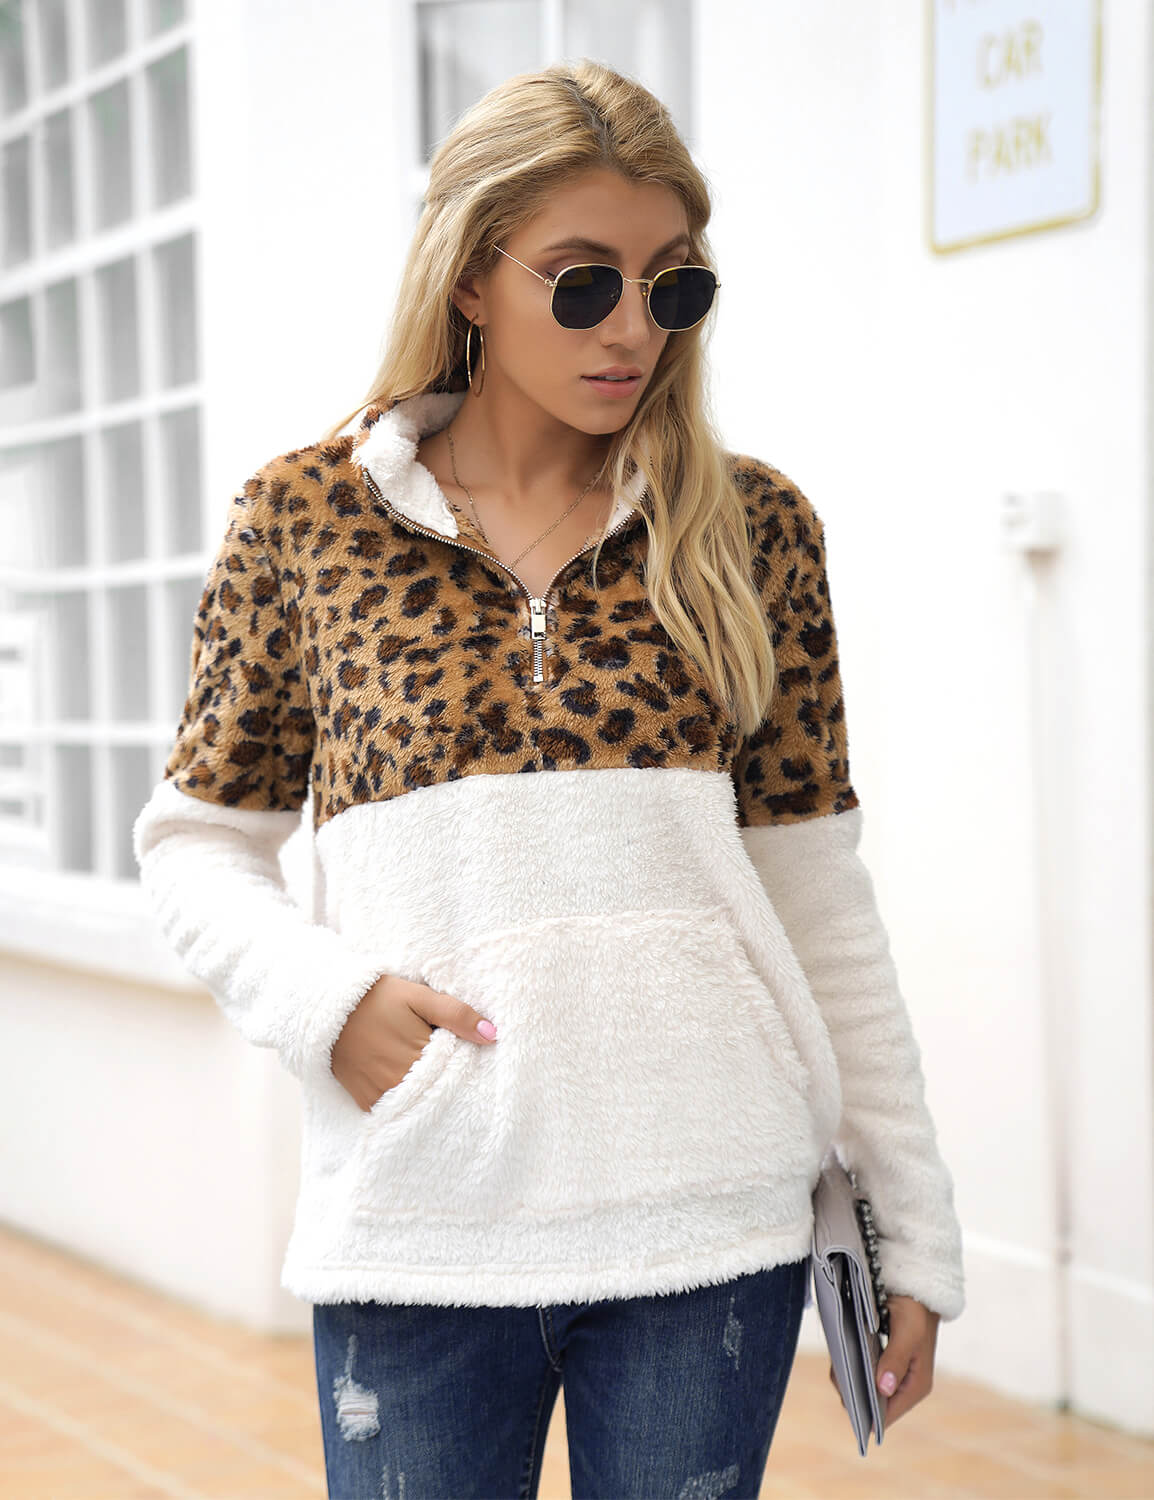 Blooming Jelly_Leopard Patchwork Fuzzy Sweatshirt_Leopard Patchwork_305104_01_Women Warm Autumn Outfits_Tops_Sweatshirt